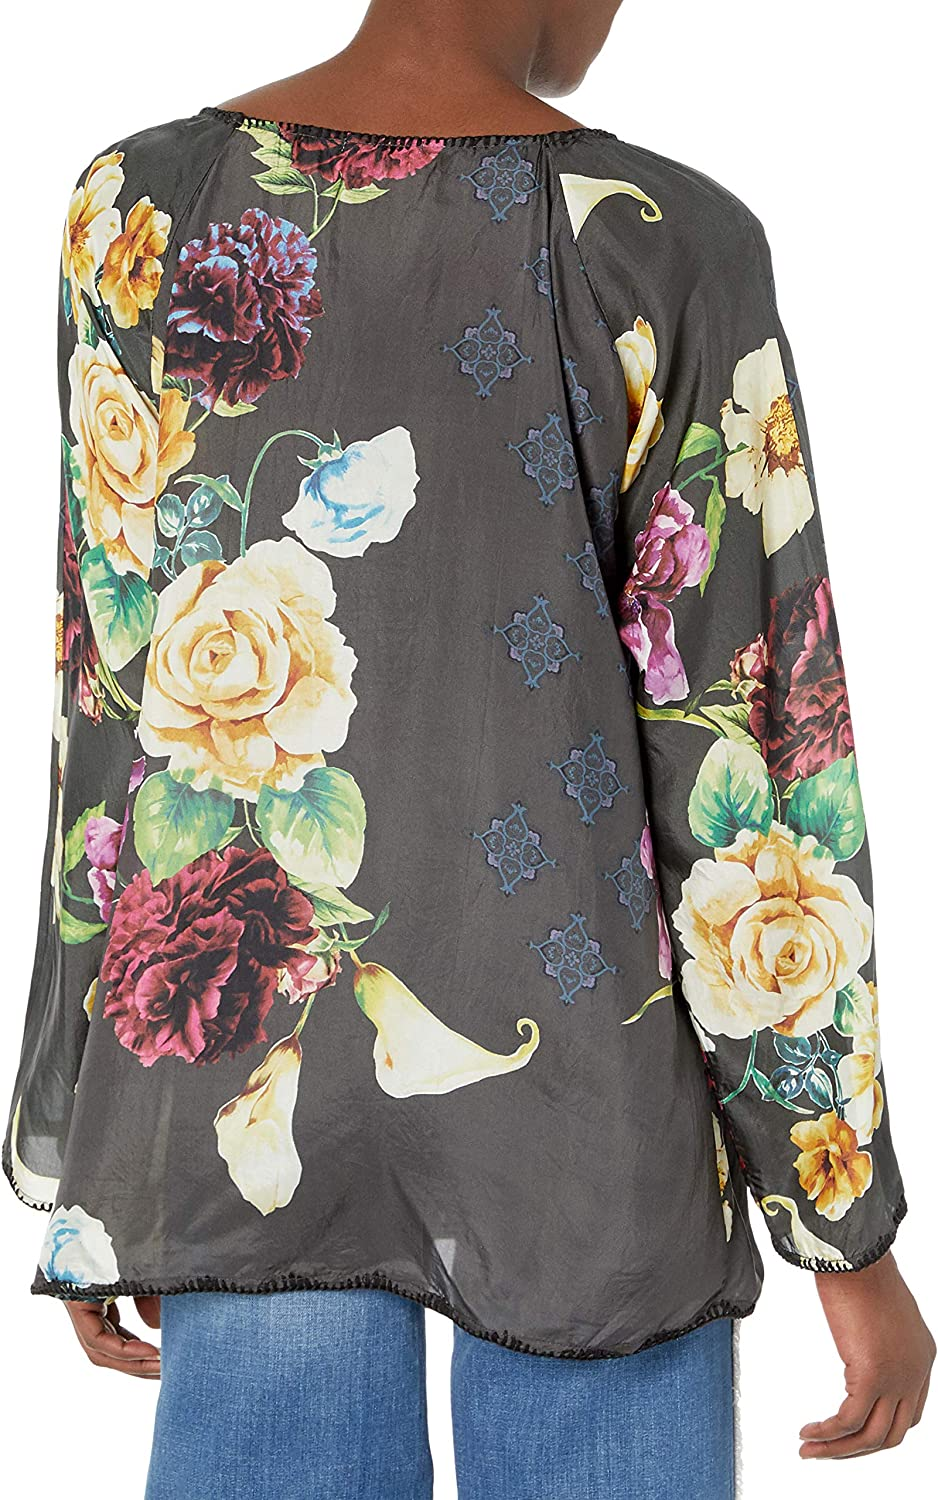 Johnny Was Womens Silk Floral Printed Blouse Blouse Multi